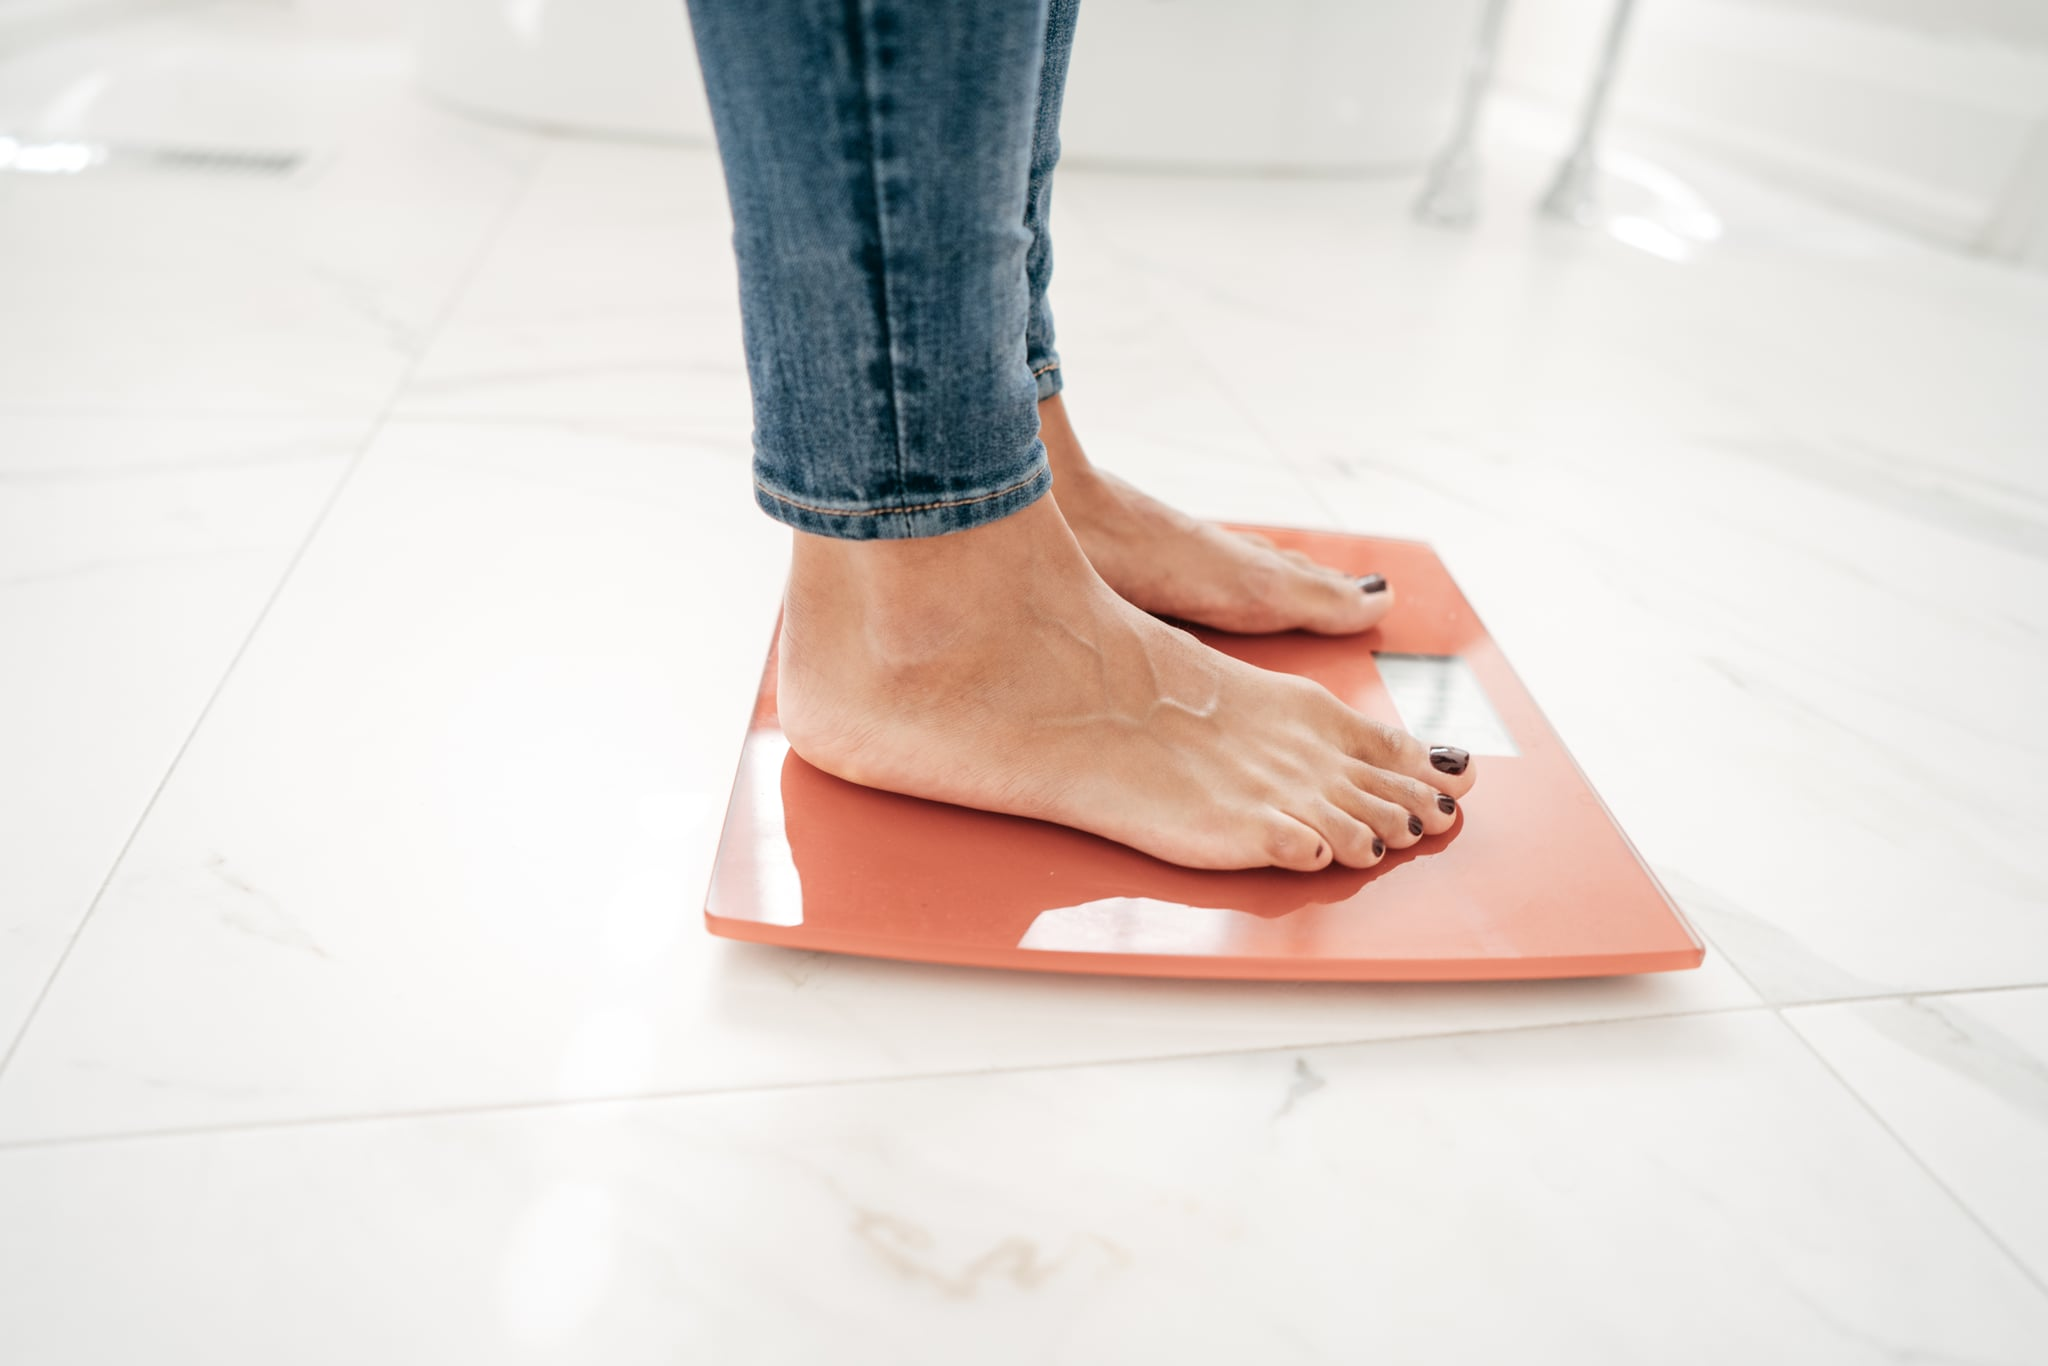 Not Sure Why Your Weight Is Fluctuating? These Weight Management Doctors Have Answers